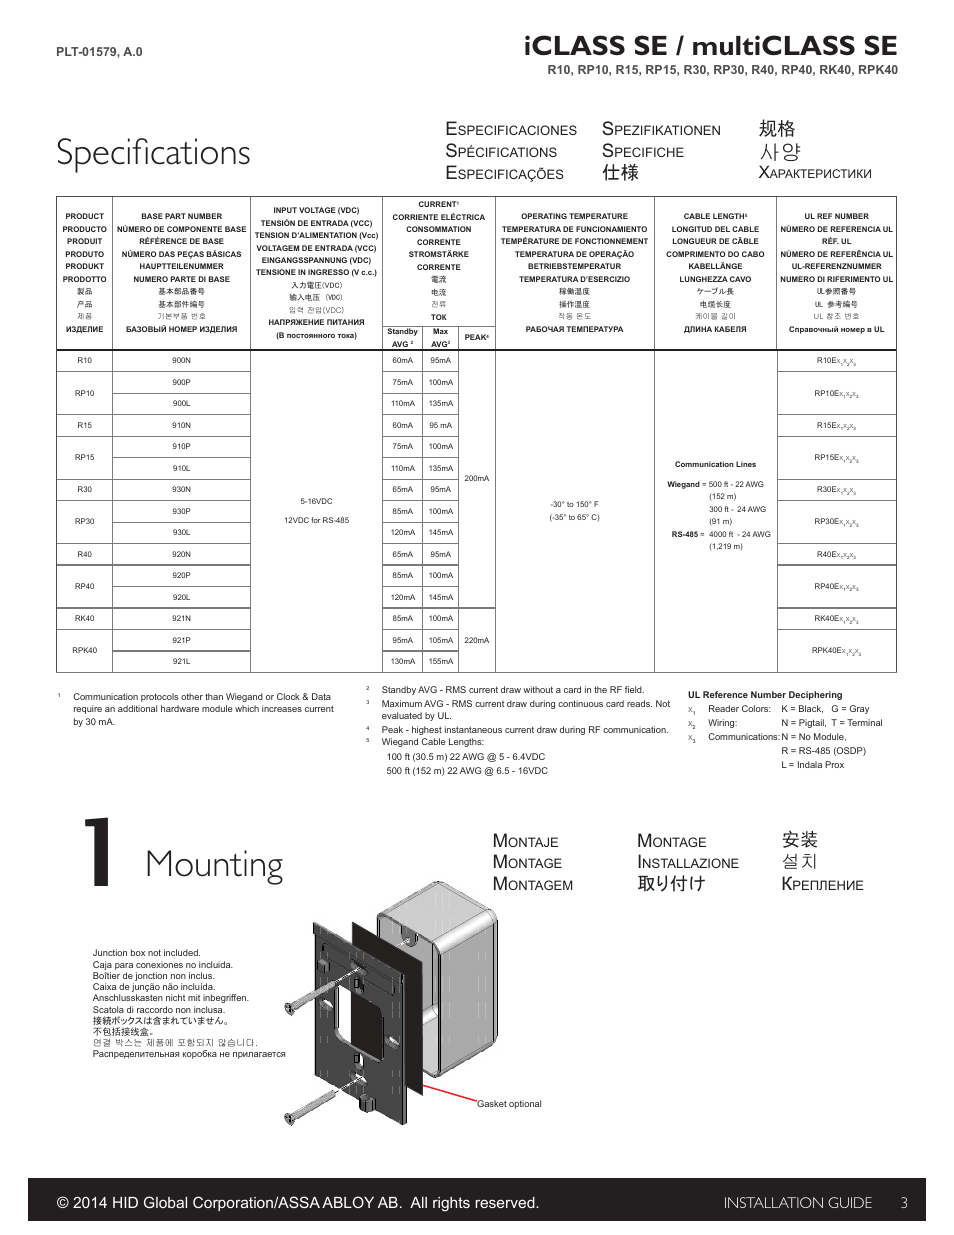 Specifications  Mounting  Iclass Se    Multiclass Se